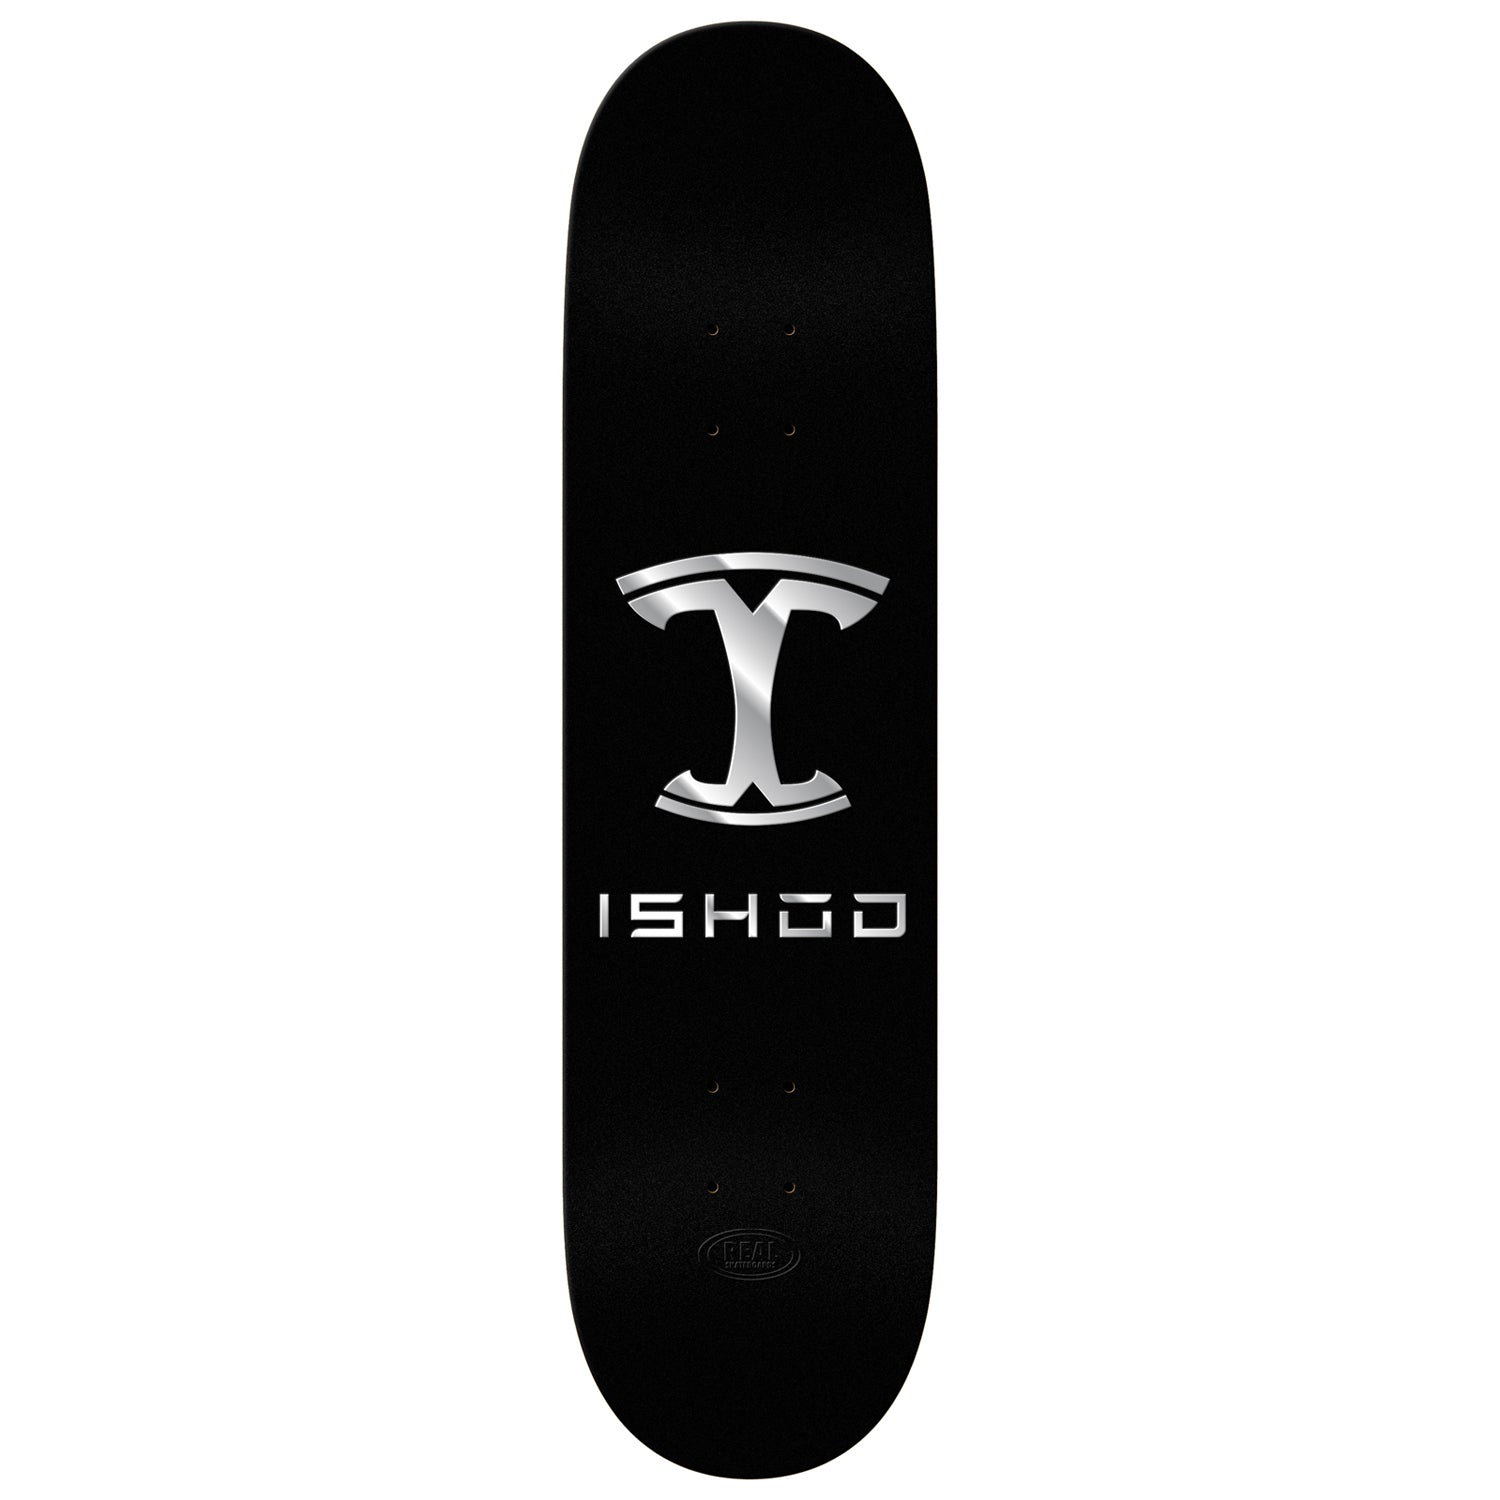 Real Deck Ishod Model W 8.06